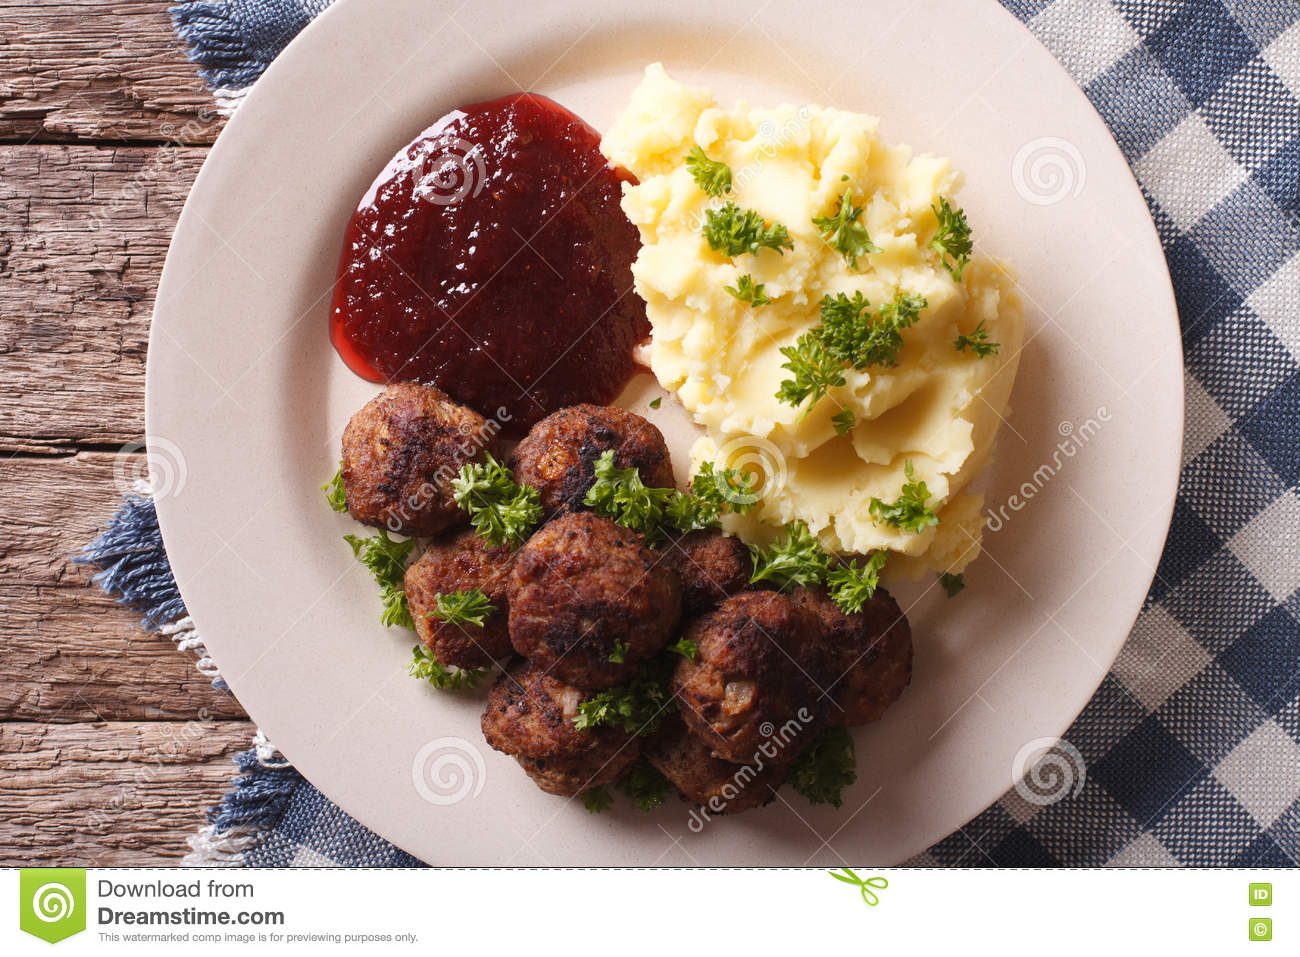 Cowberry sauce for meat. We give spiciness to the second dishes